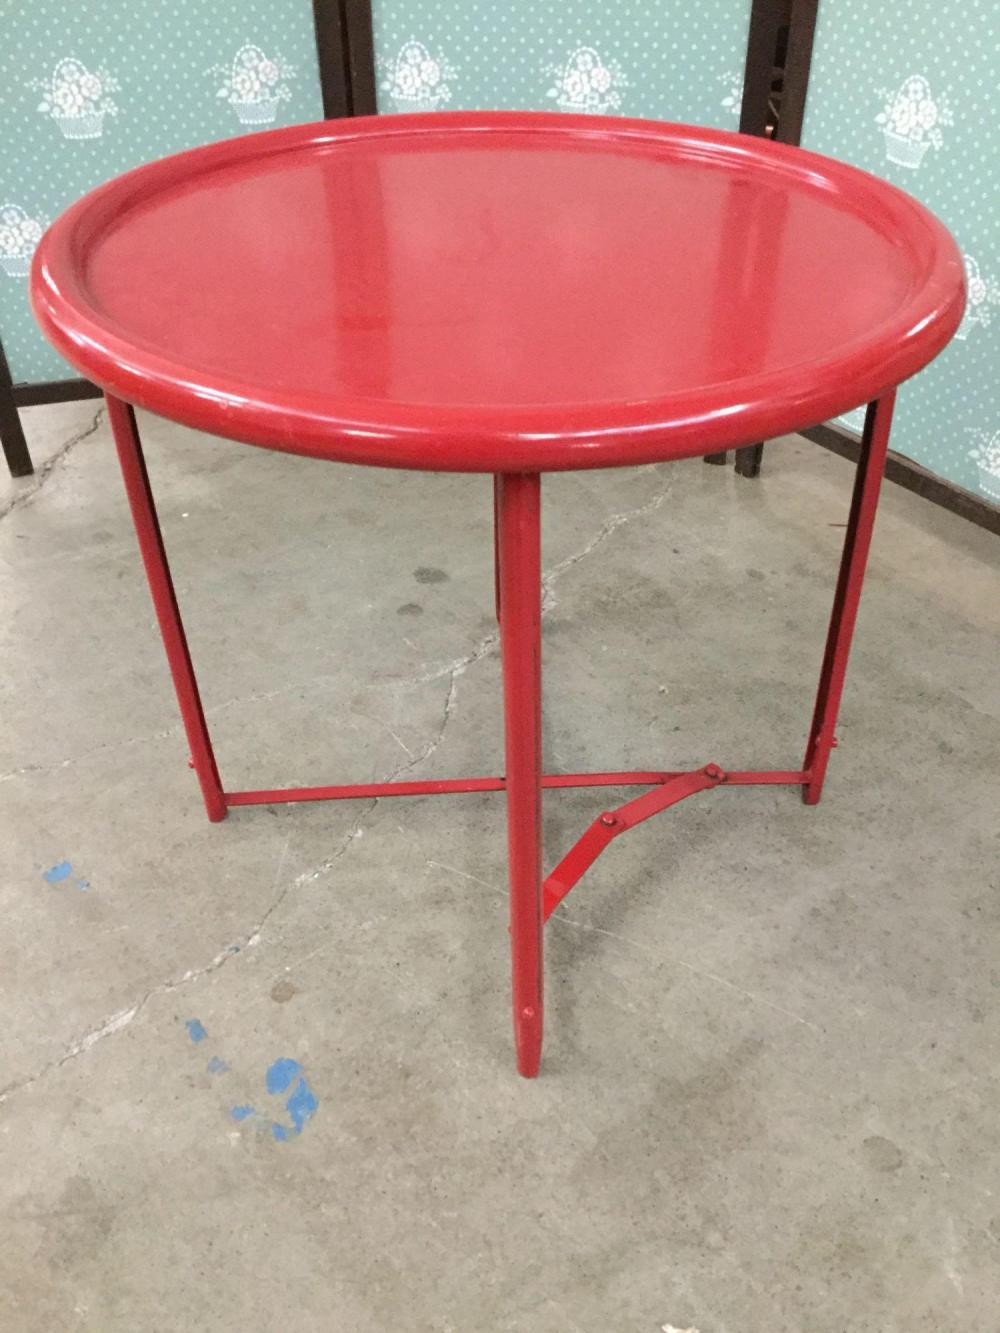 Lot Vintage Red Painted Metal Round Two Piece Folding Table